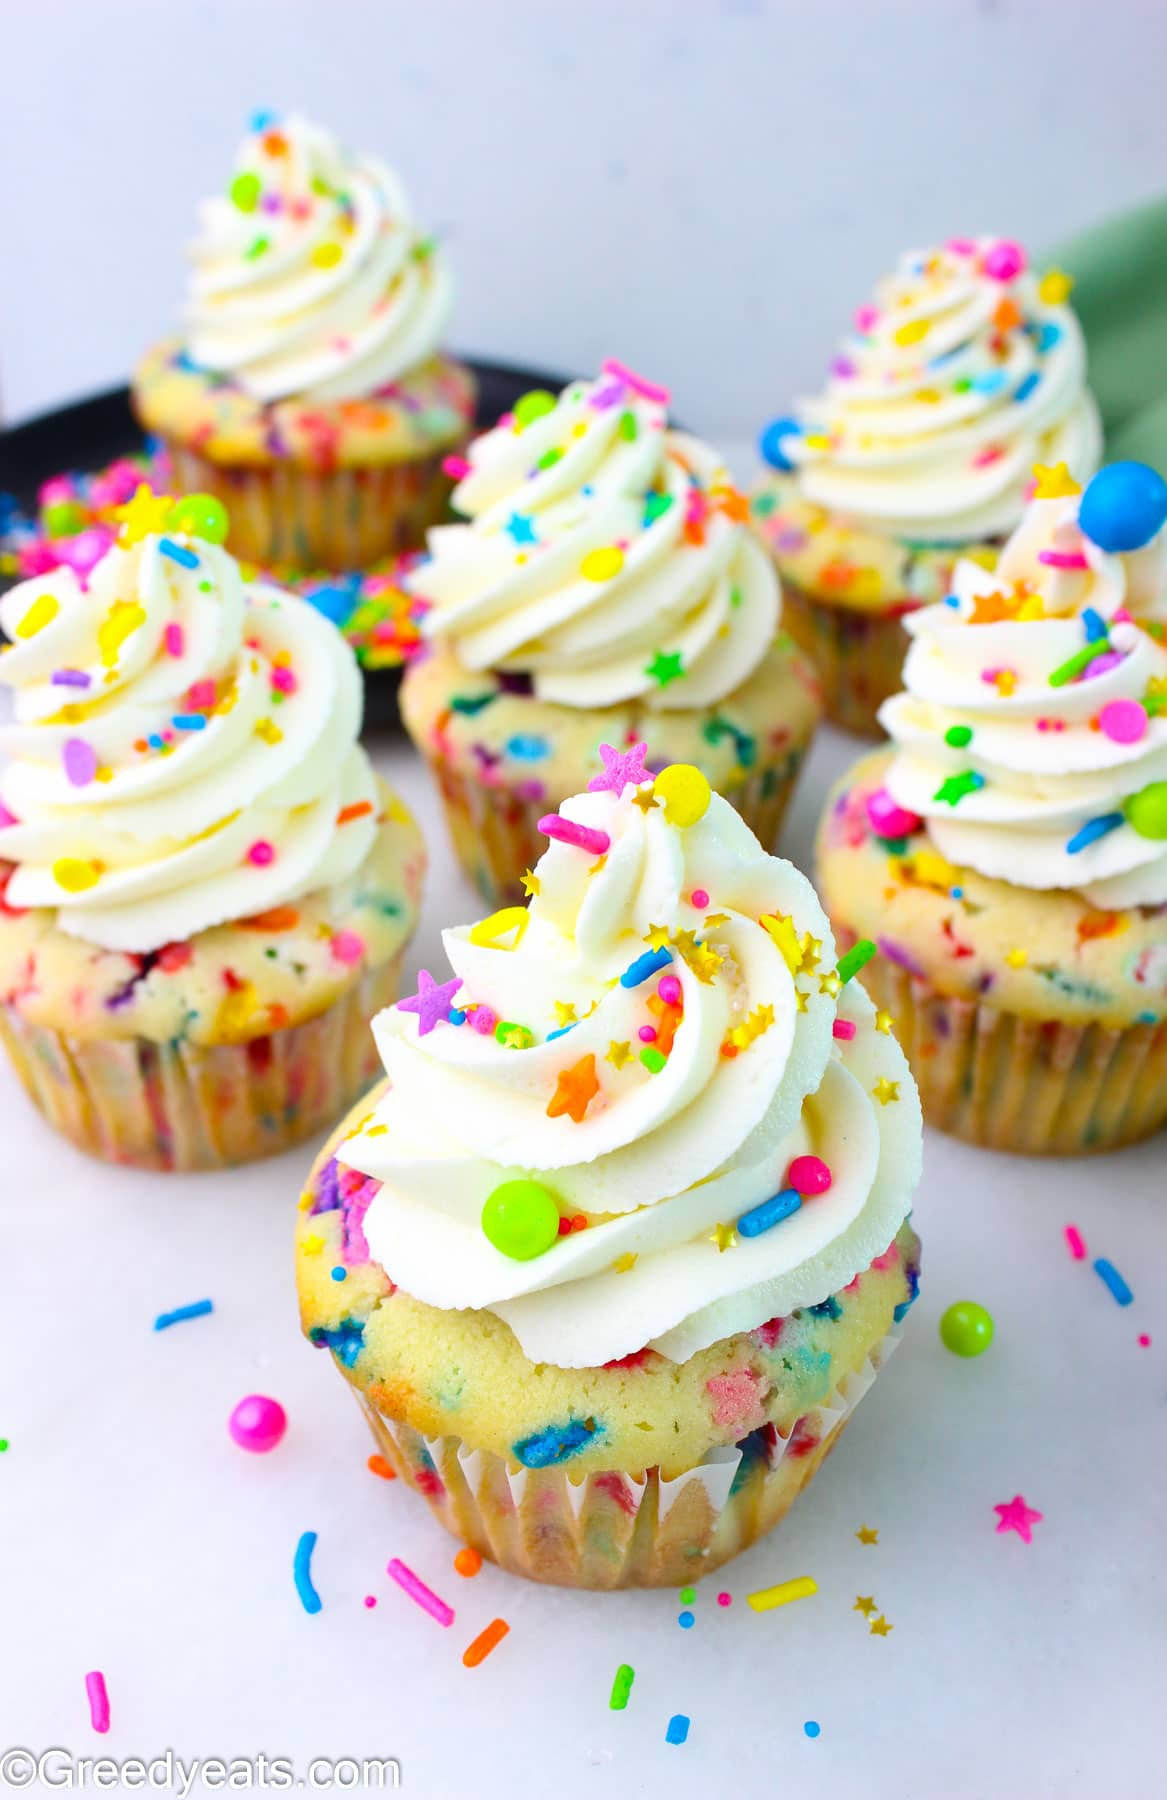 Homemade Funfetti Cupcakes topped with Vanilla Buttercream Frosting kept on a white board.